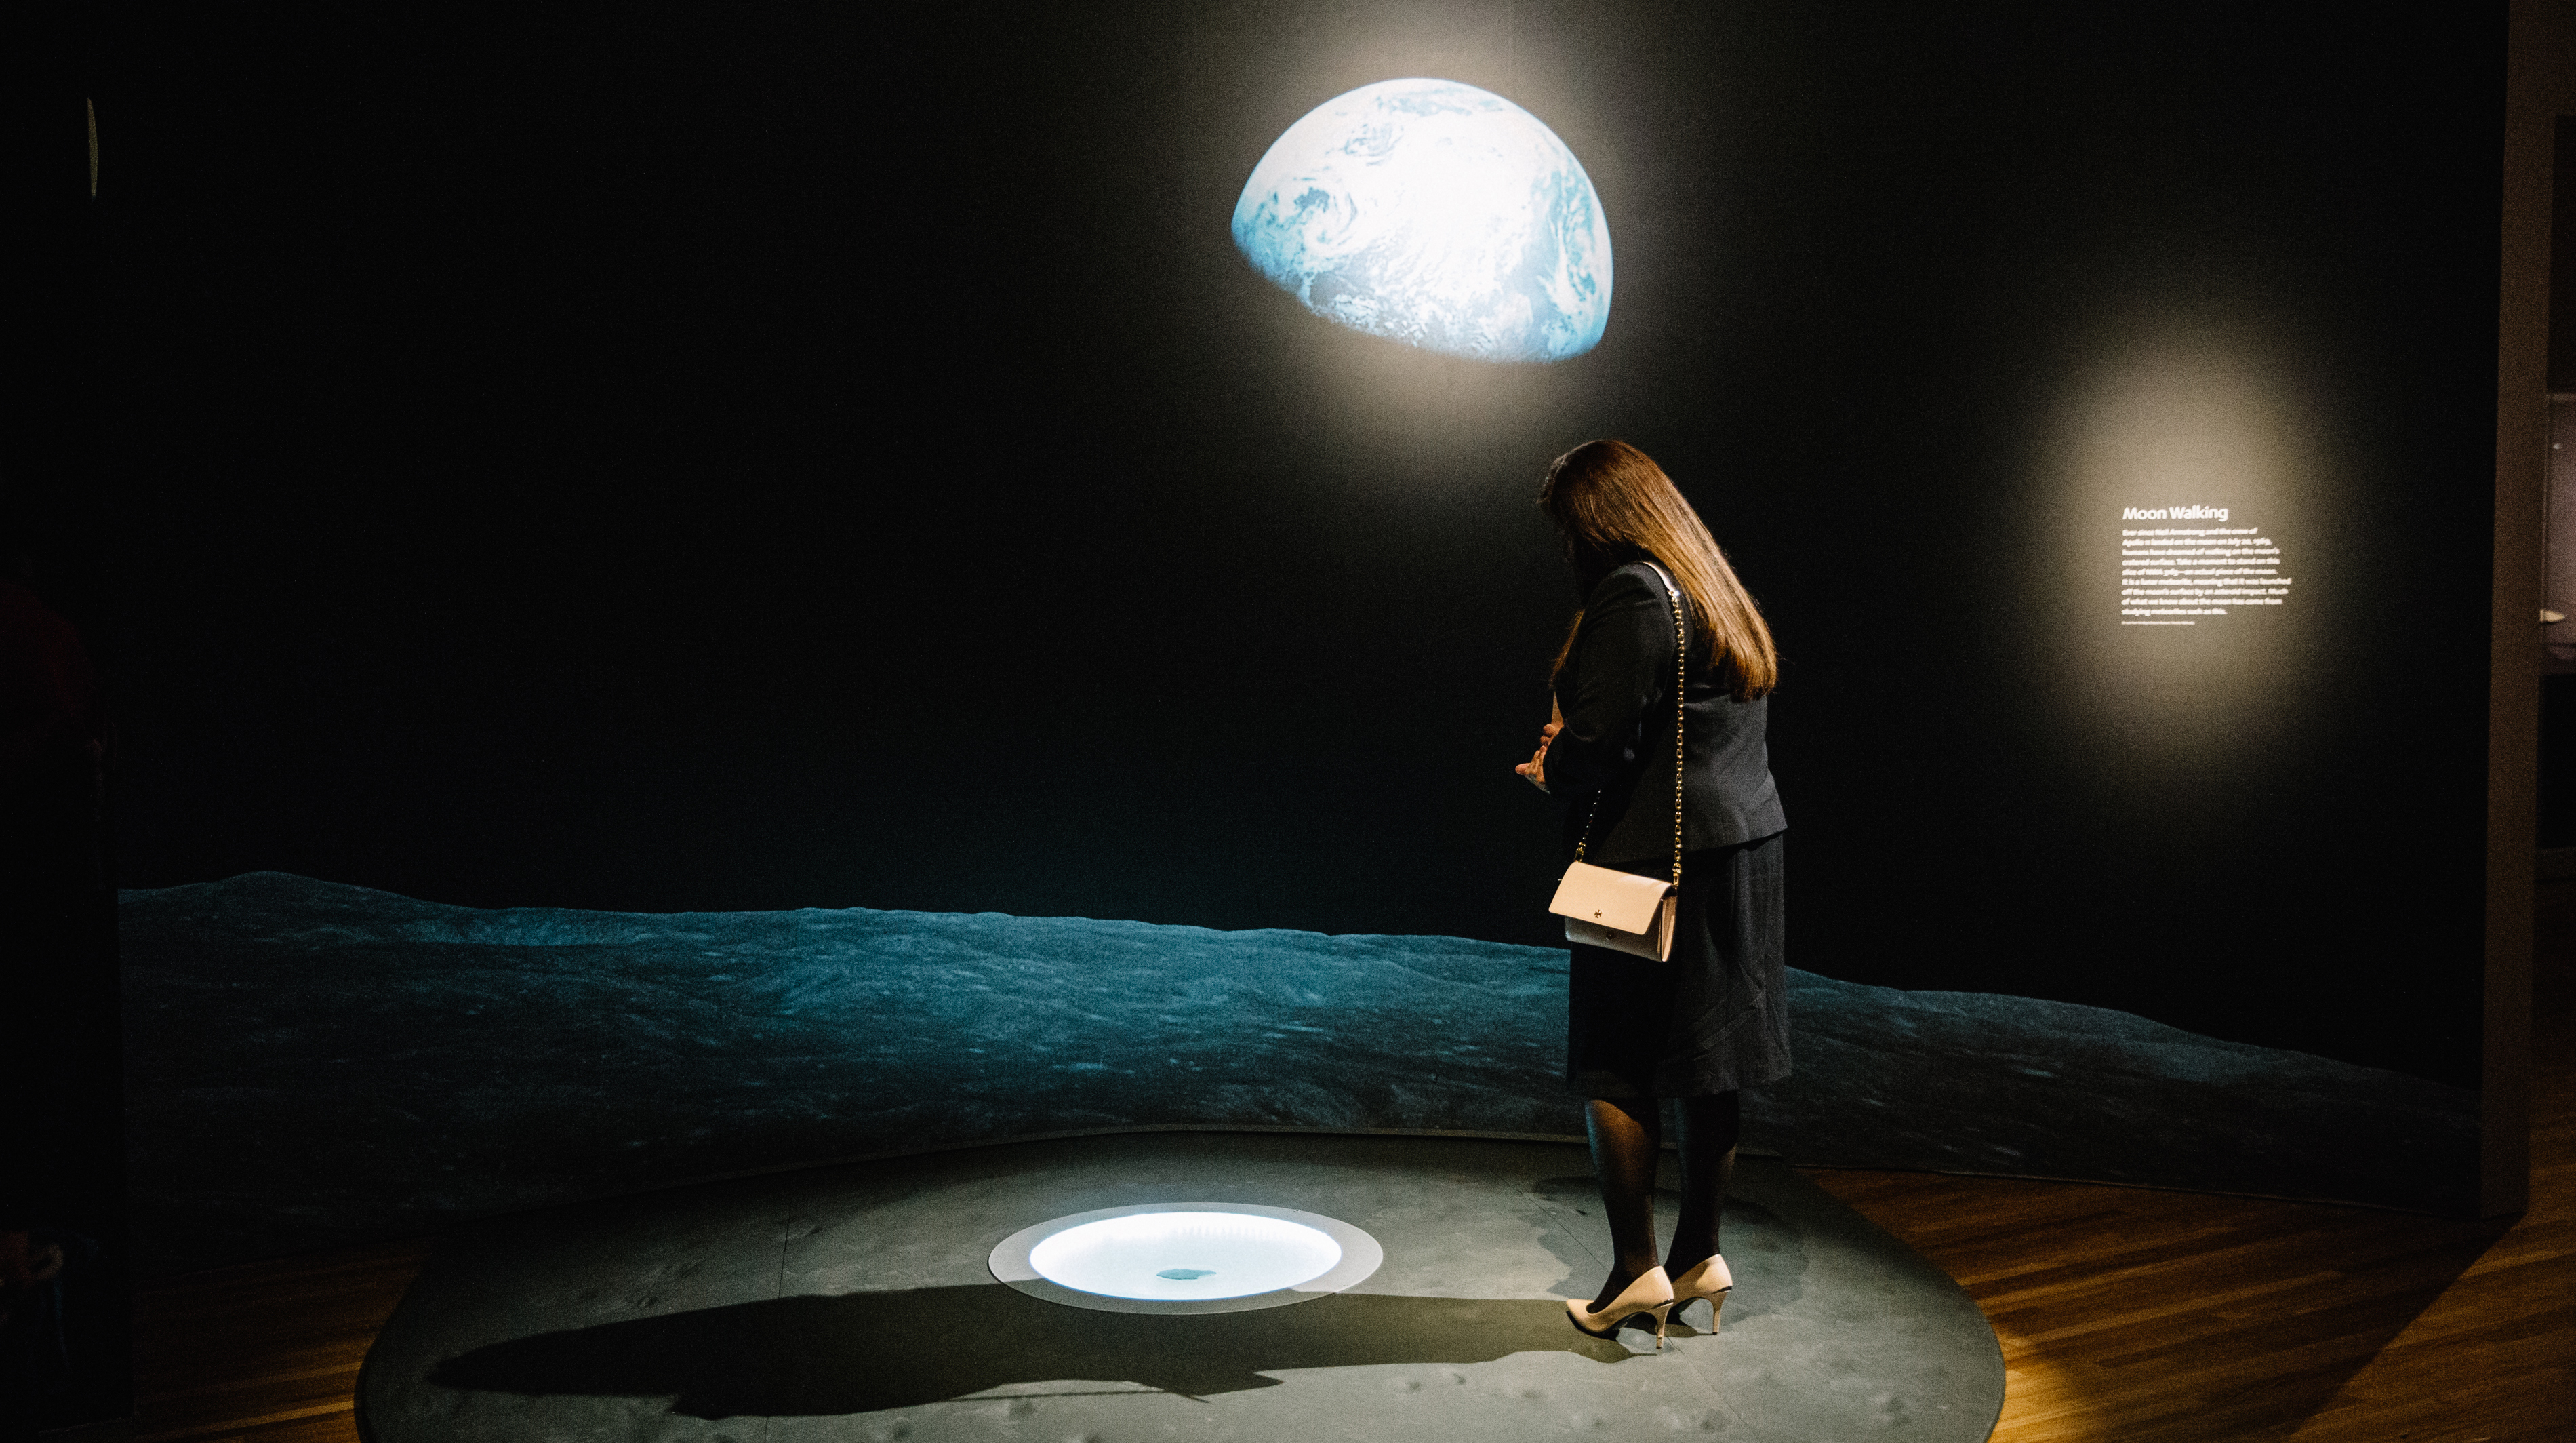 2db9437b55 ... A woman looking down at the floor with an image of the earth on the wall